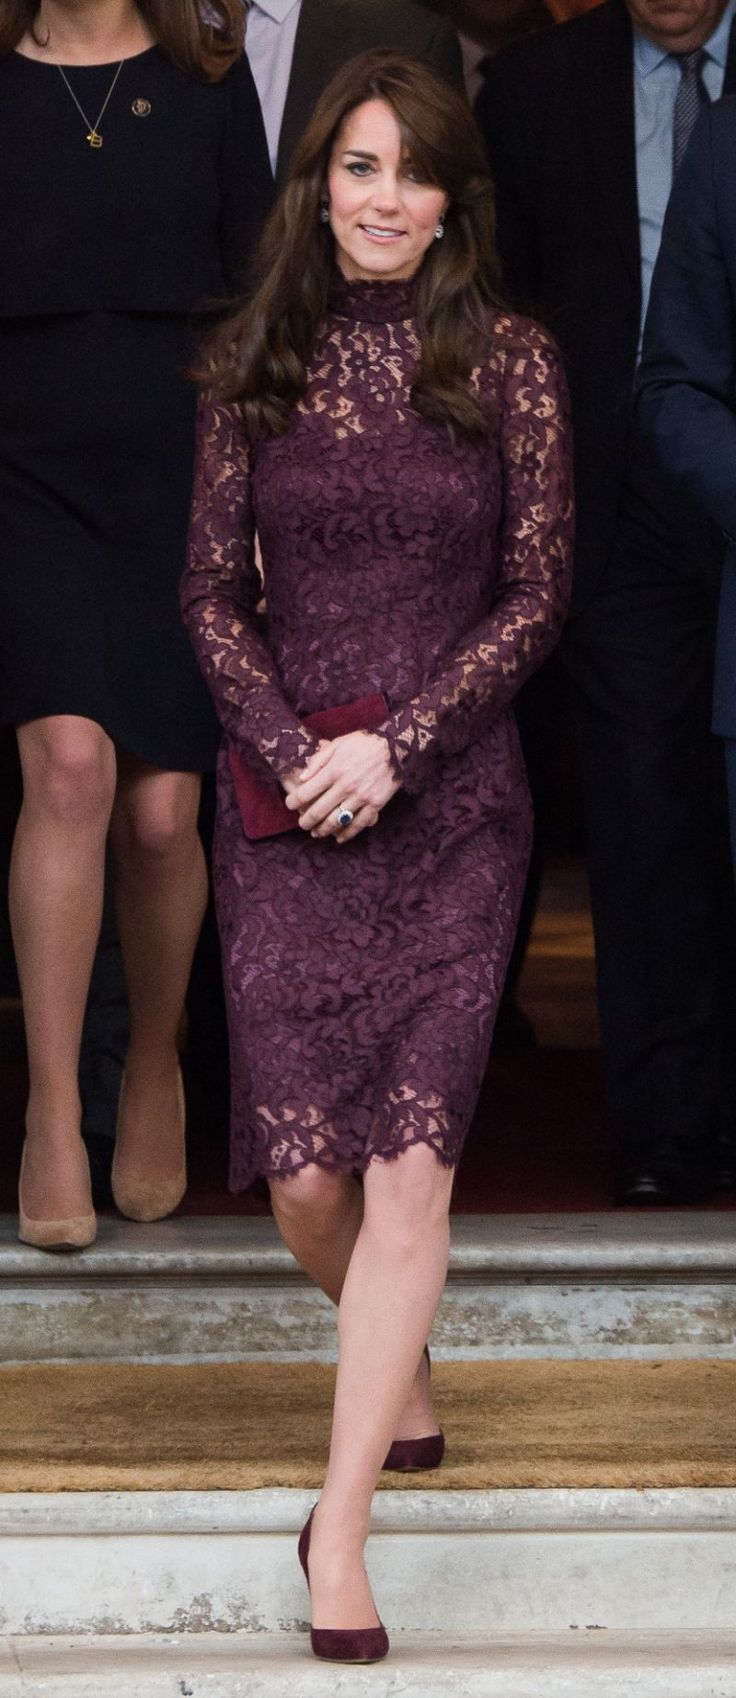 Kate Middleton Wears Lace Dolce & Gabbana Dress - to the Lancaster House in London, England, to help welcome Chinese President Xi Jinping, and his wife, Madame Peng Liyuan, to Creative Collaborations: UK & China last week - 10/21/2015